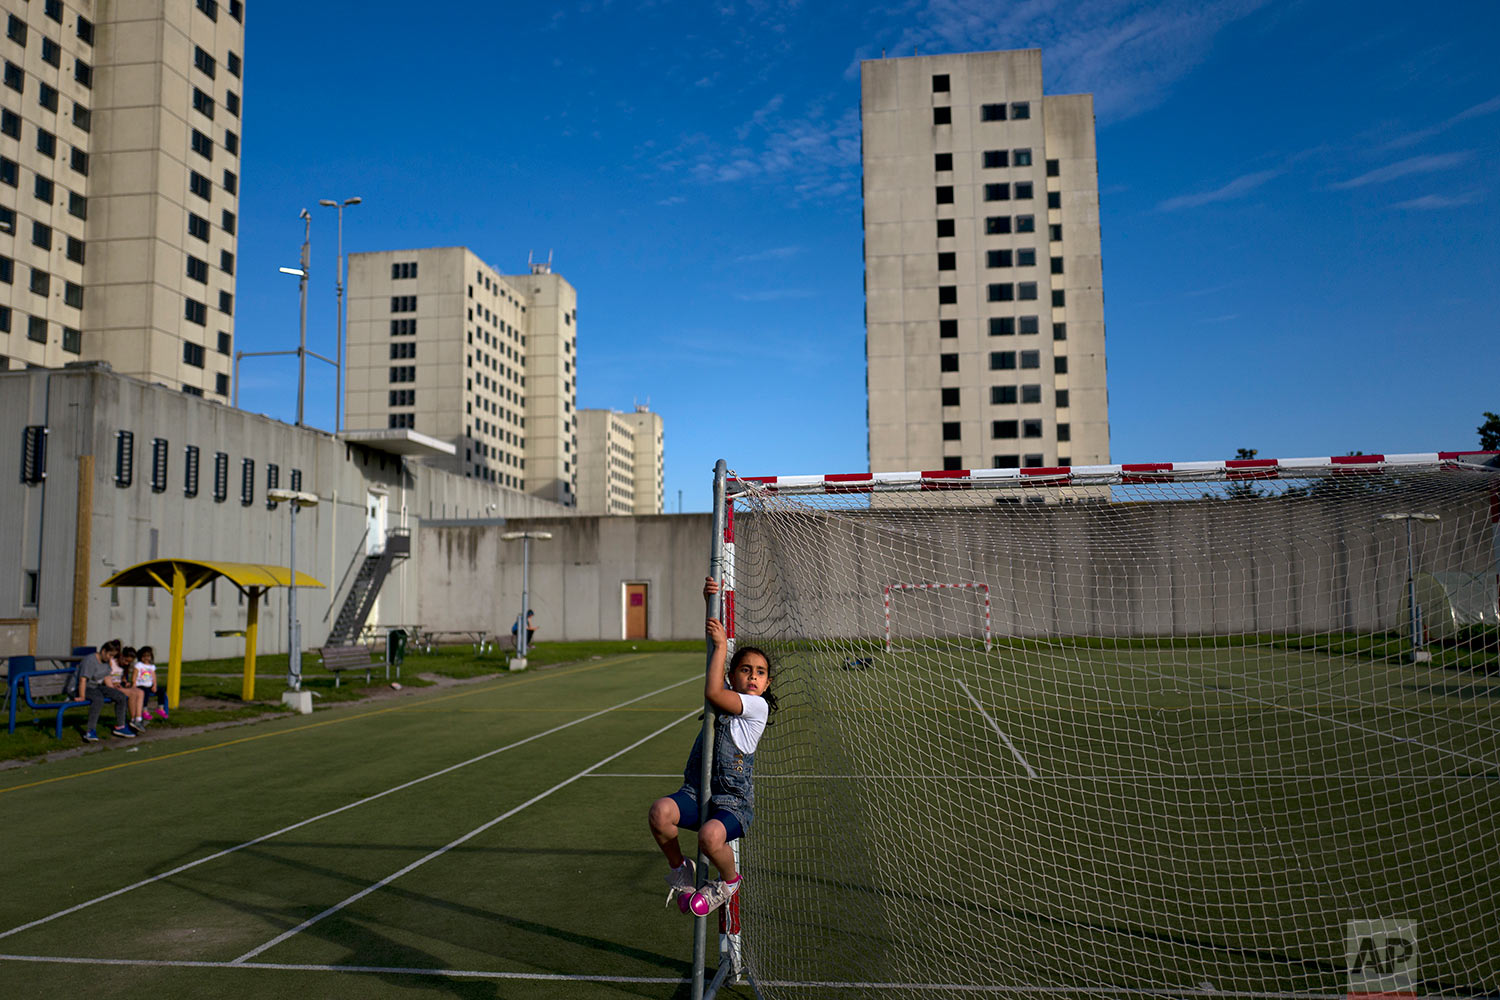 In this Tuesday, July 18, 2017 photo, refugee Amal Sakkal, 8, from Damascus, Syria, plays at the former prison of Bijlmerbajes in Amsterdam, Netherlands. (AP Photo/Muhammed Muheisen)